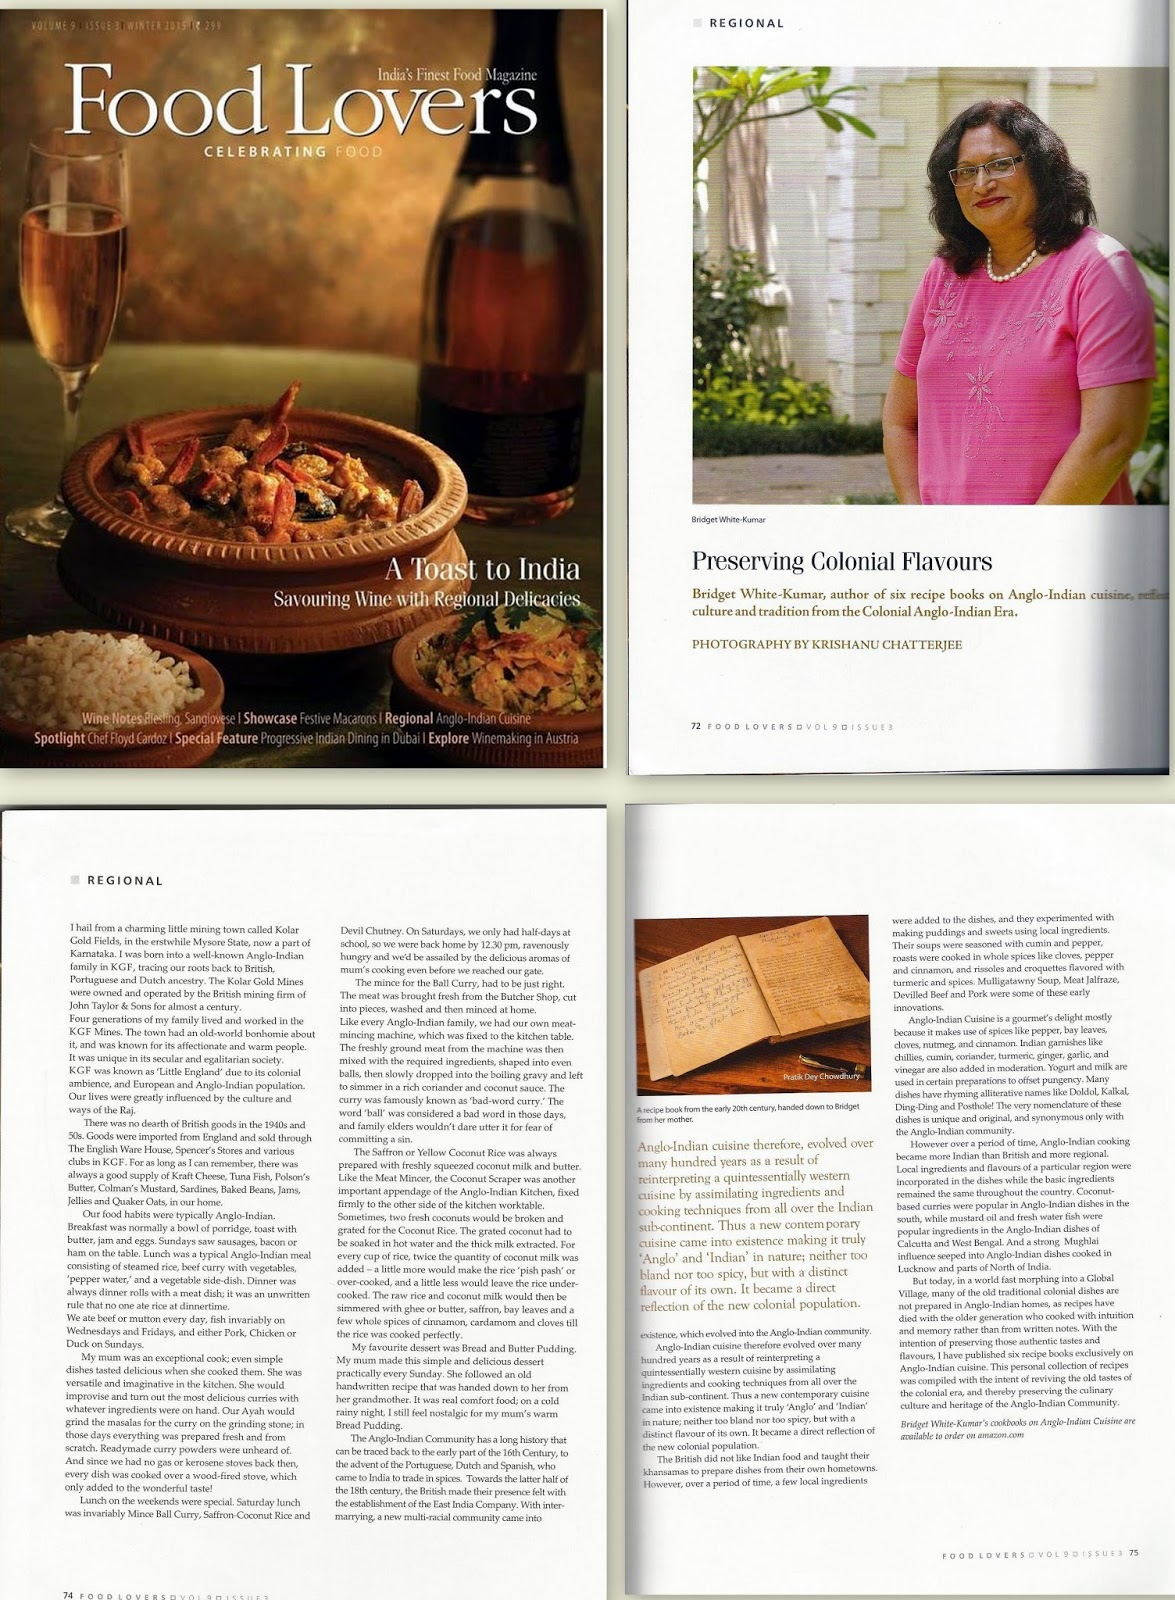 ANGLO-INDIAN RECIPES by Bridget White: BRIDGET WHITE-KUMAR FEATURED ...